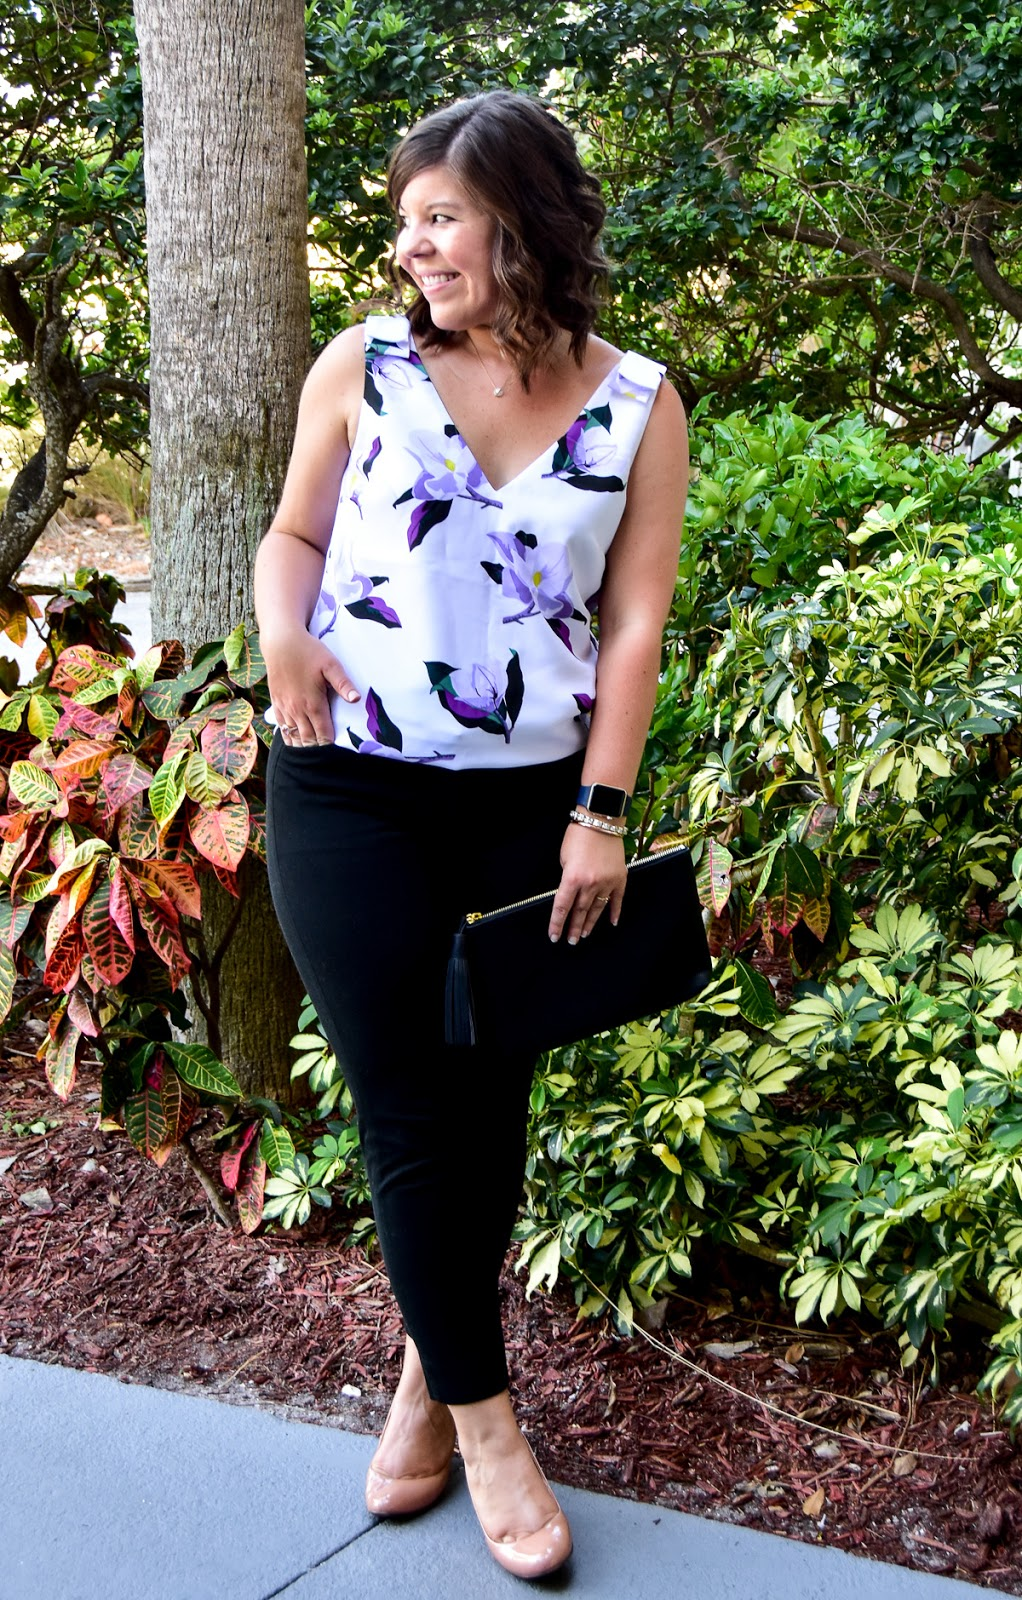 Workweek Chic: Banana Republic Floral Top